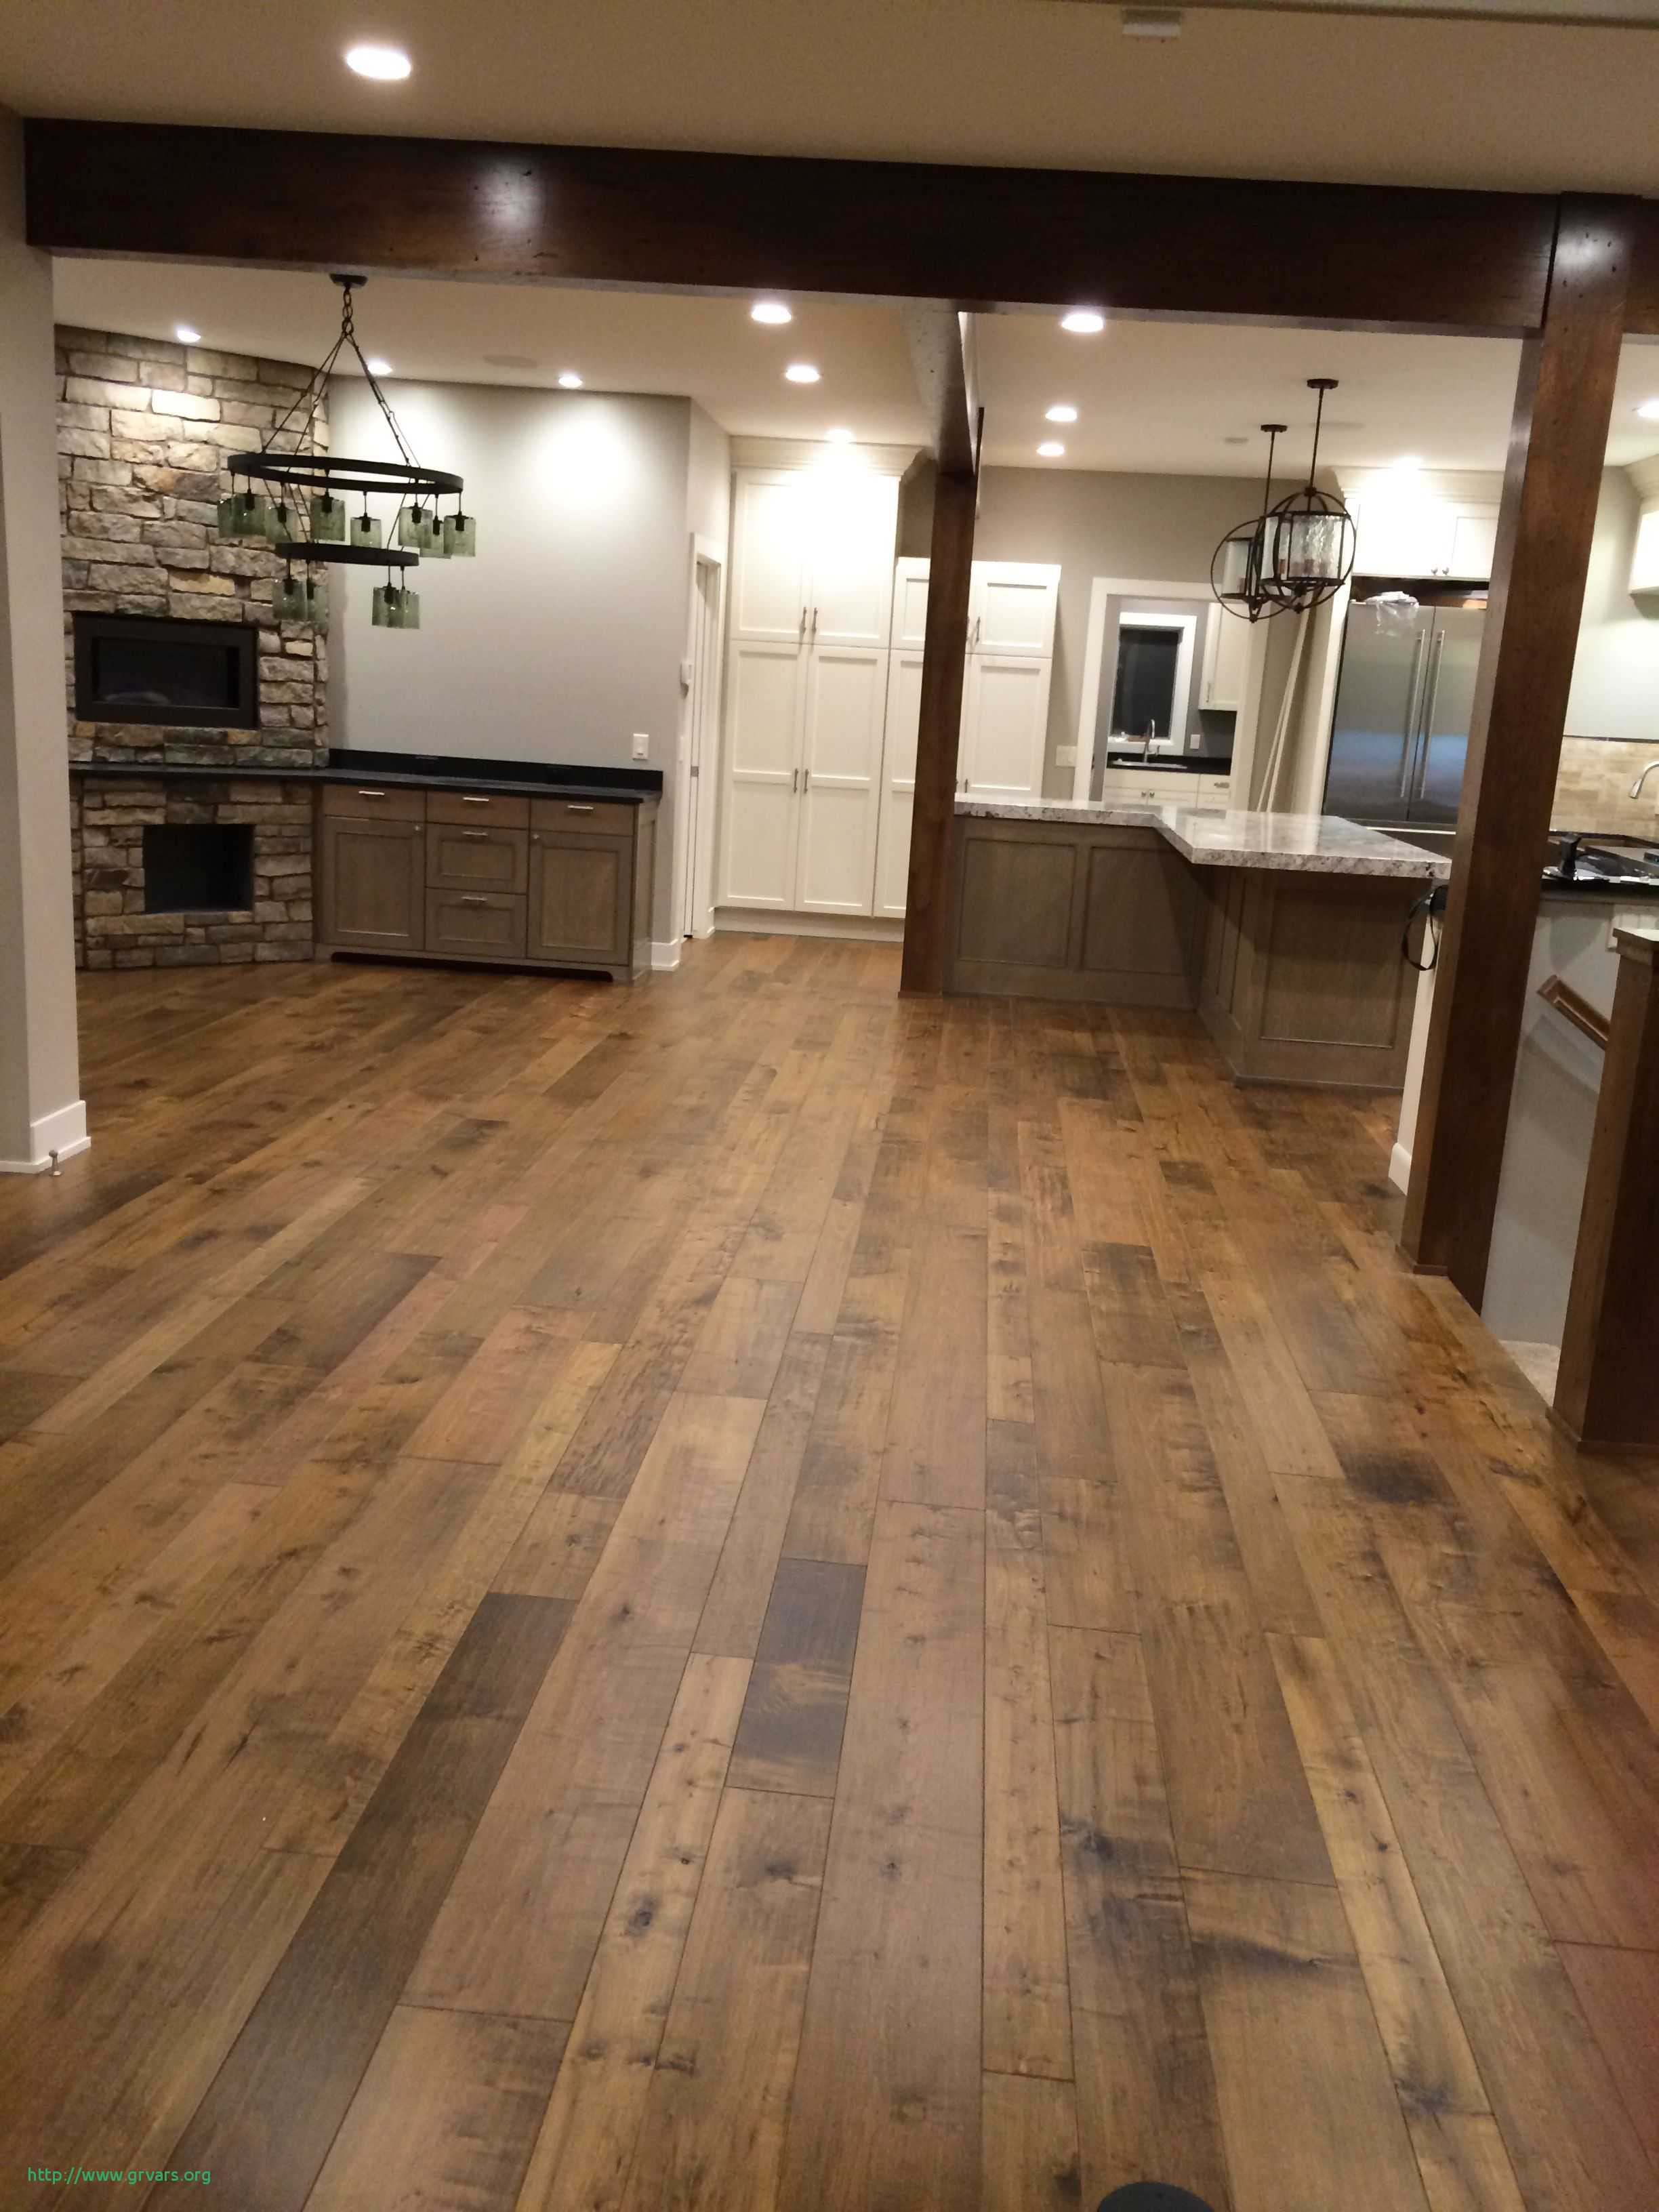 hardwood flooring nashville tn of 24 a‰lagant buy floors direct nashville ideas blog pertaining to the floors were purchased from carpets direct and installed by fulton construction engineered hardwood flooring collection